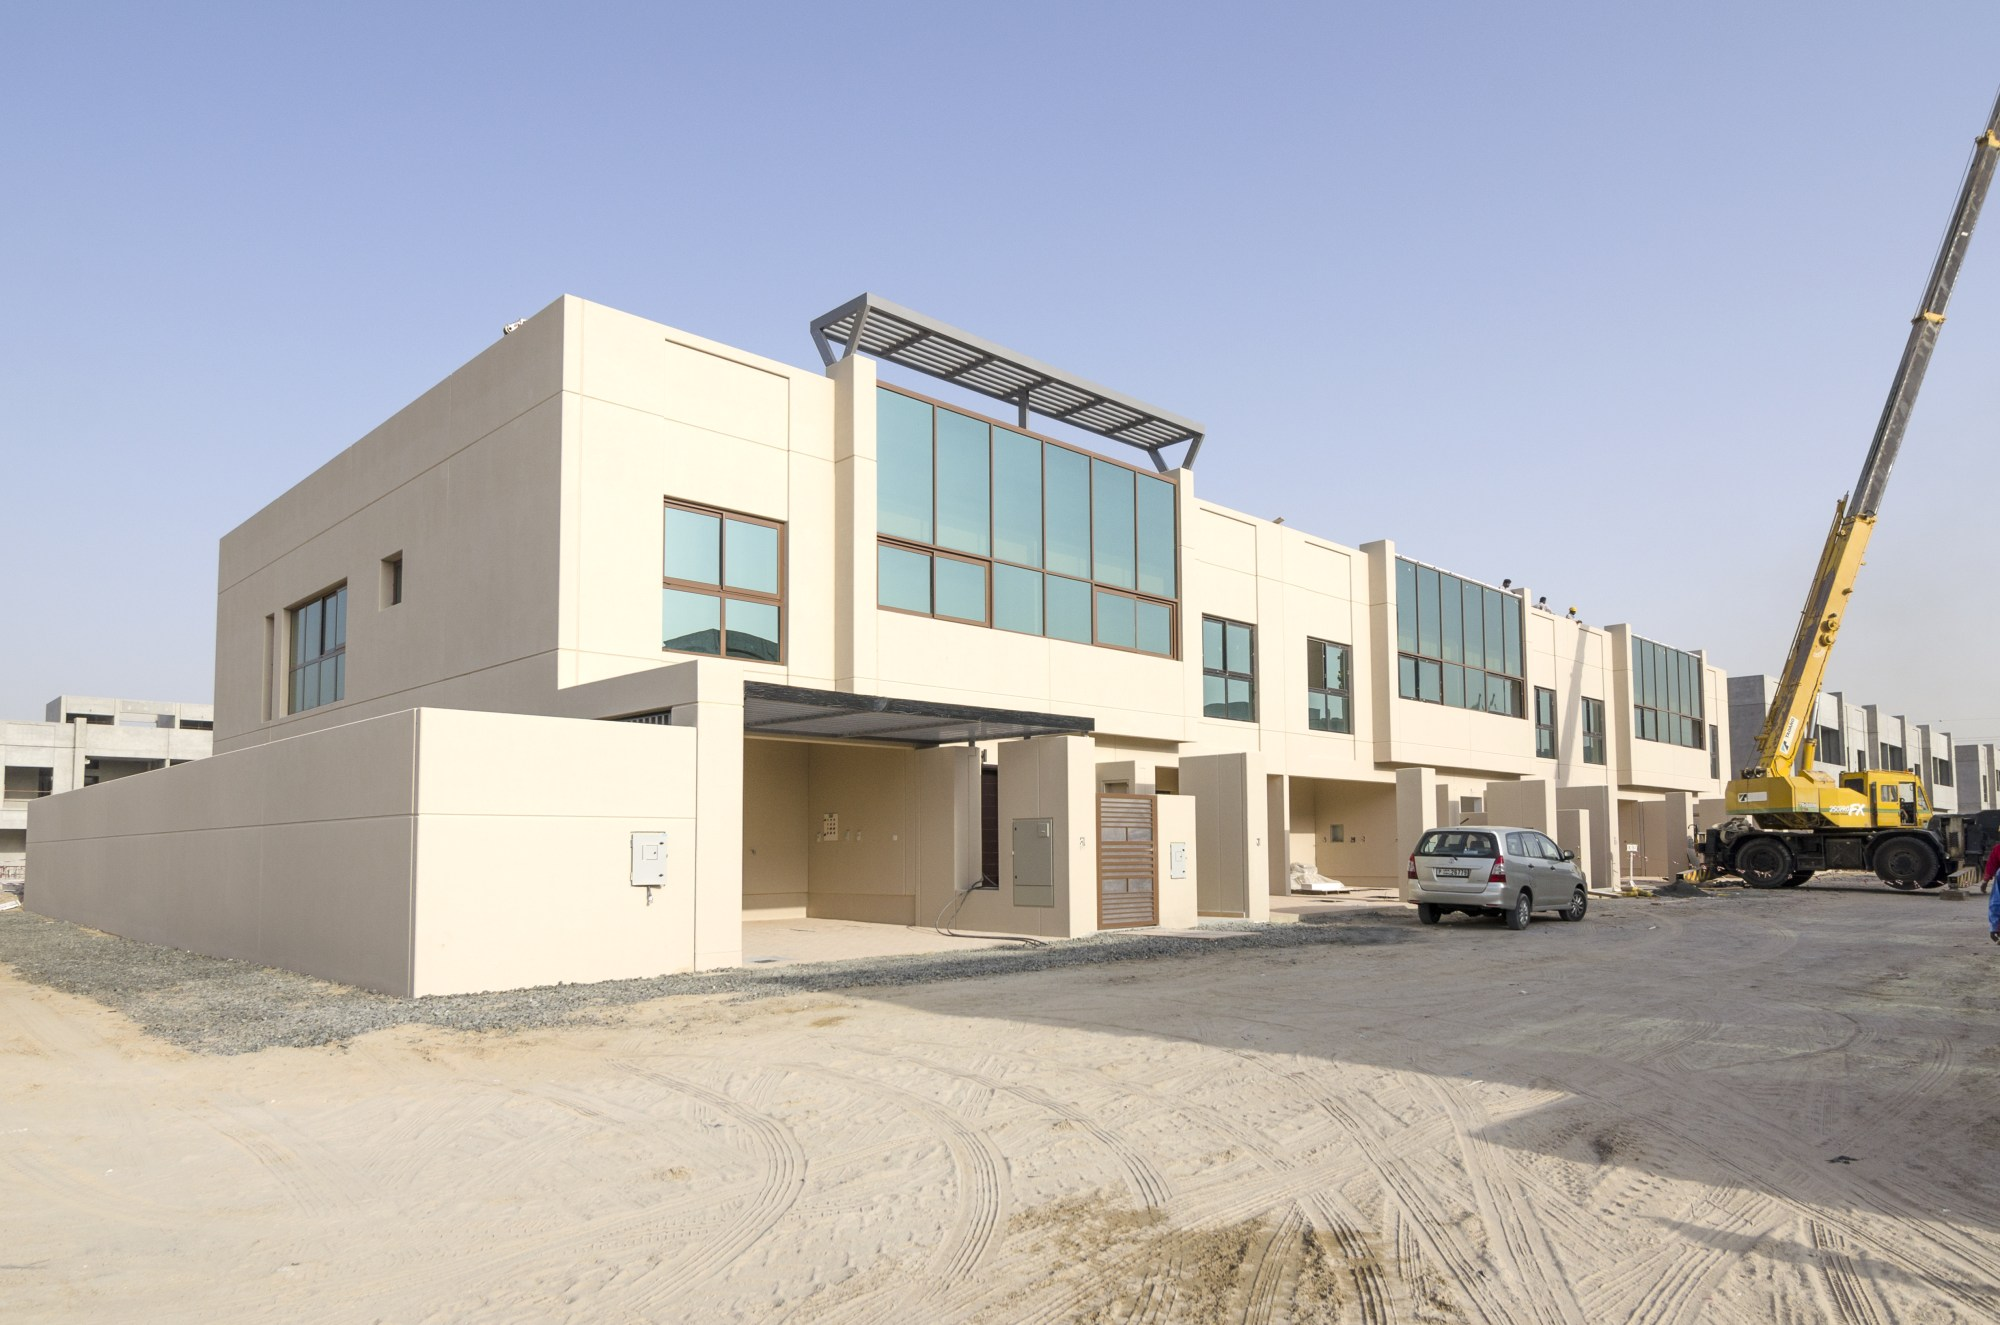 4 Bed Townhouse in Brand New Community